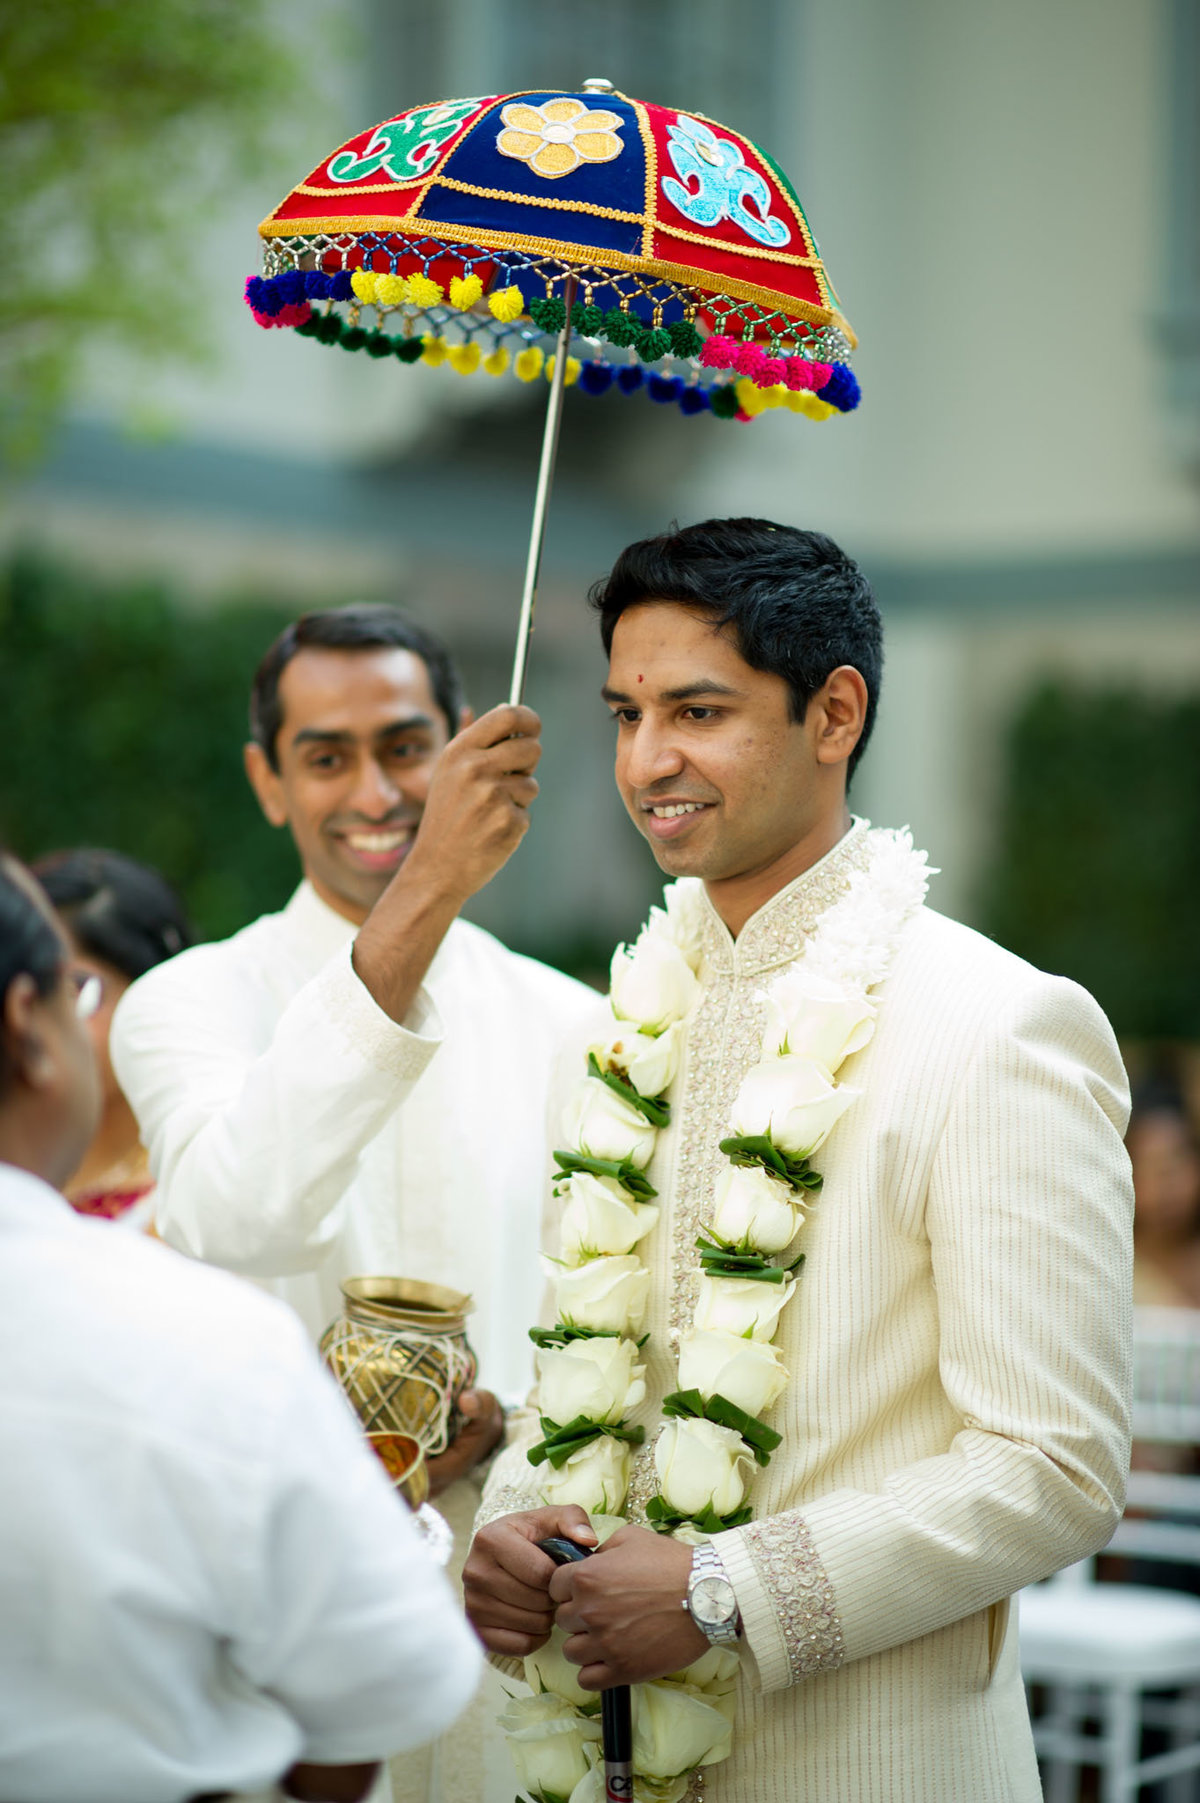 Harold-Washington-Library-South-Asian-Wedding-086